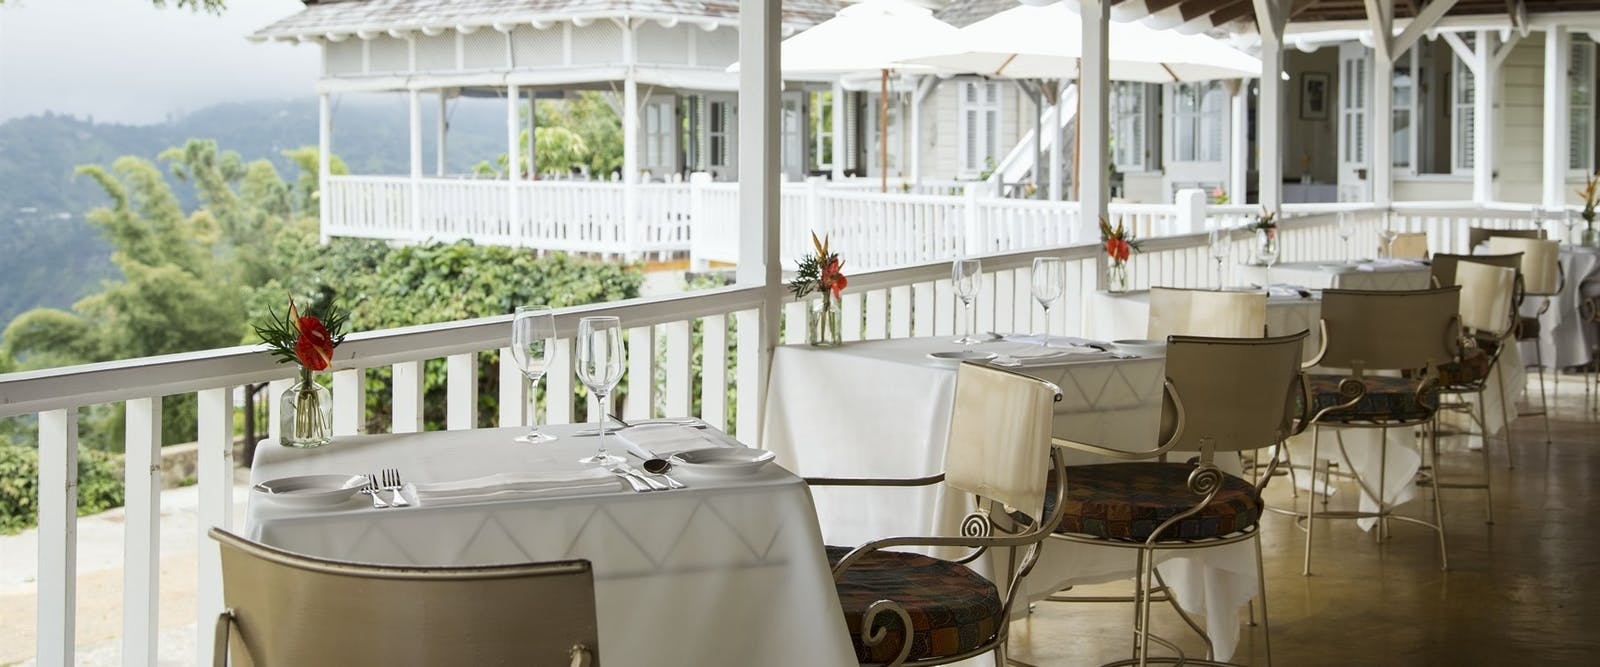 Enjoy new Jamaican cuisine in the restaurant at Strawberry Hill, Jamaica